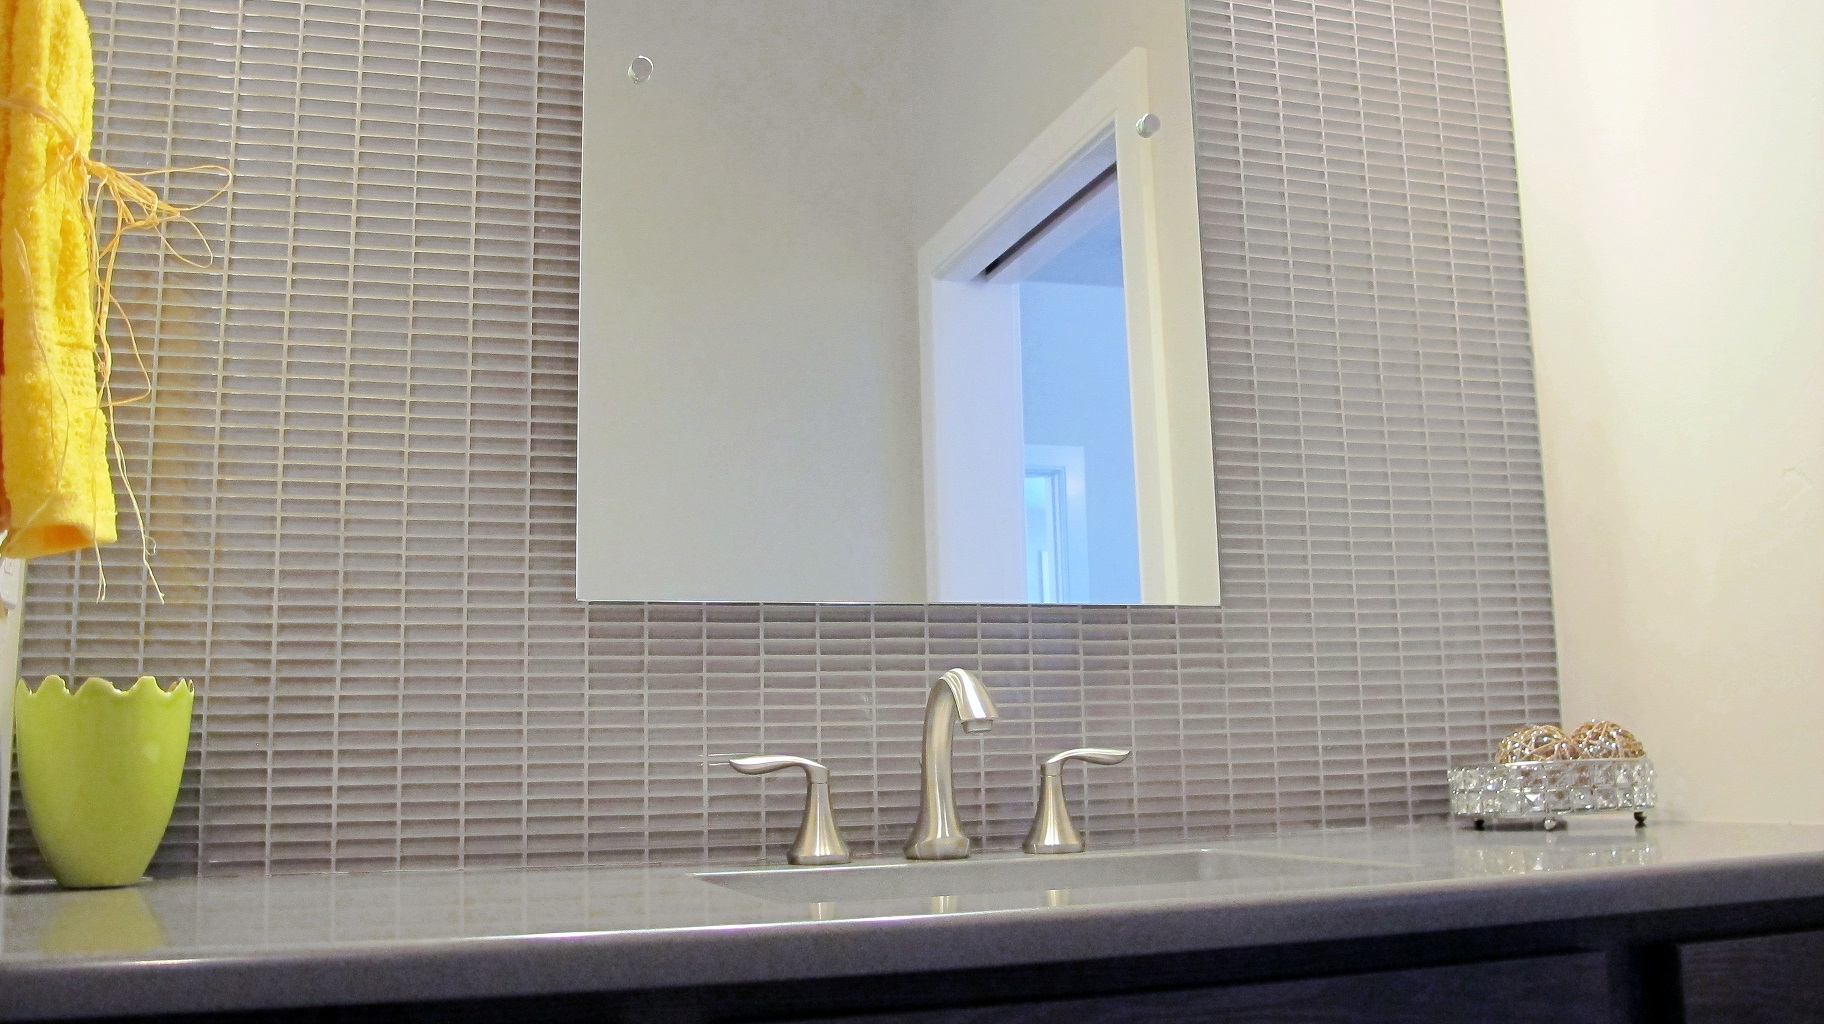 Bathroom glass tile backsplash